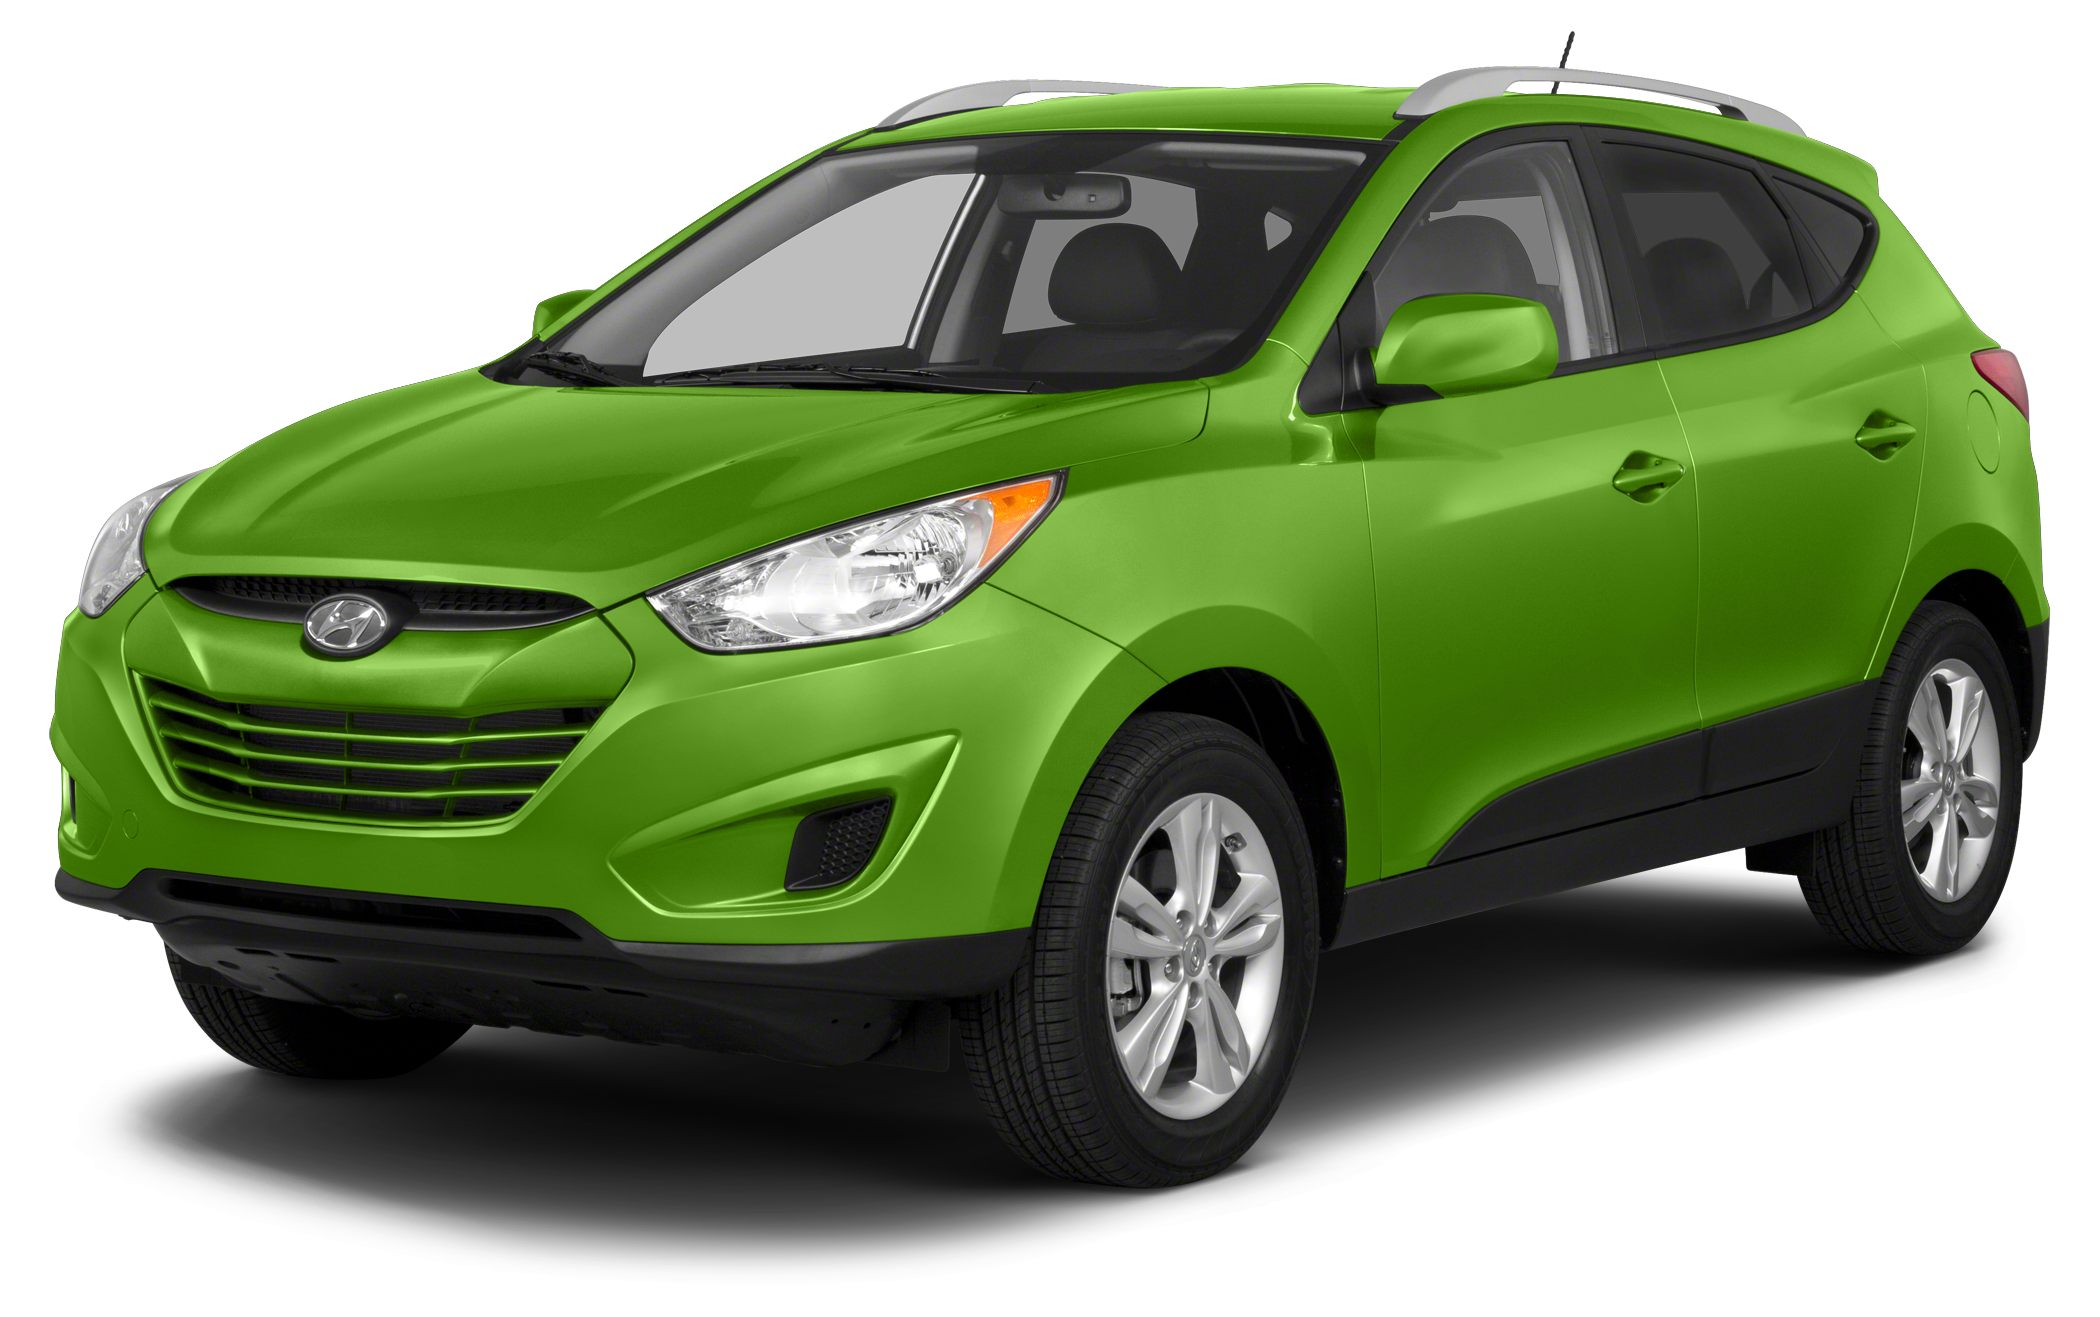 2013 Hyundai Tucson GLS AWD You NEED to see this SUV STOP Read this Your quest for a gently us